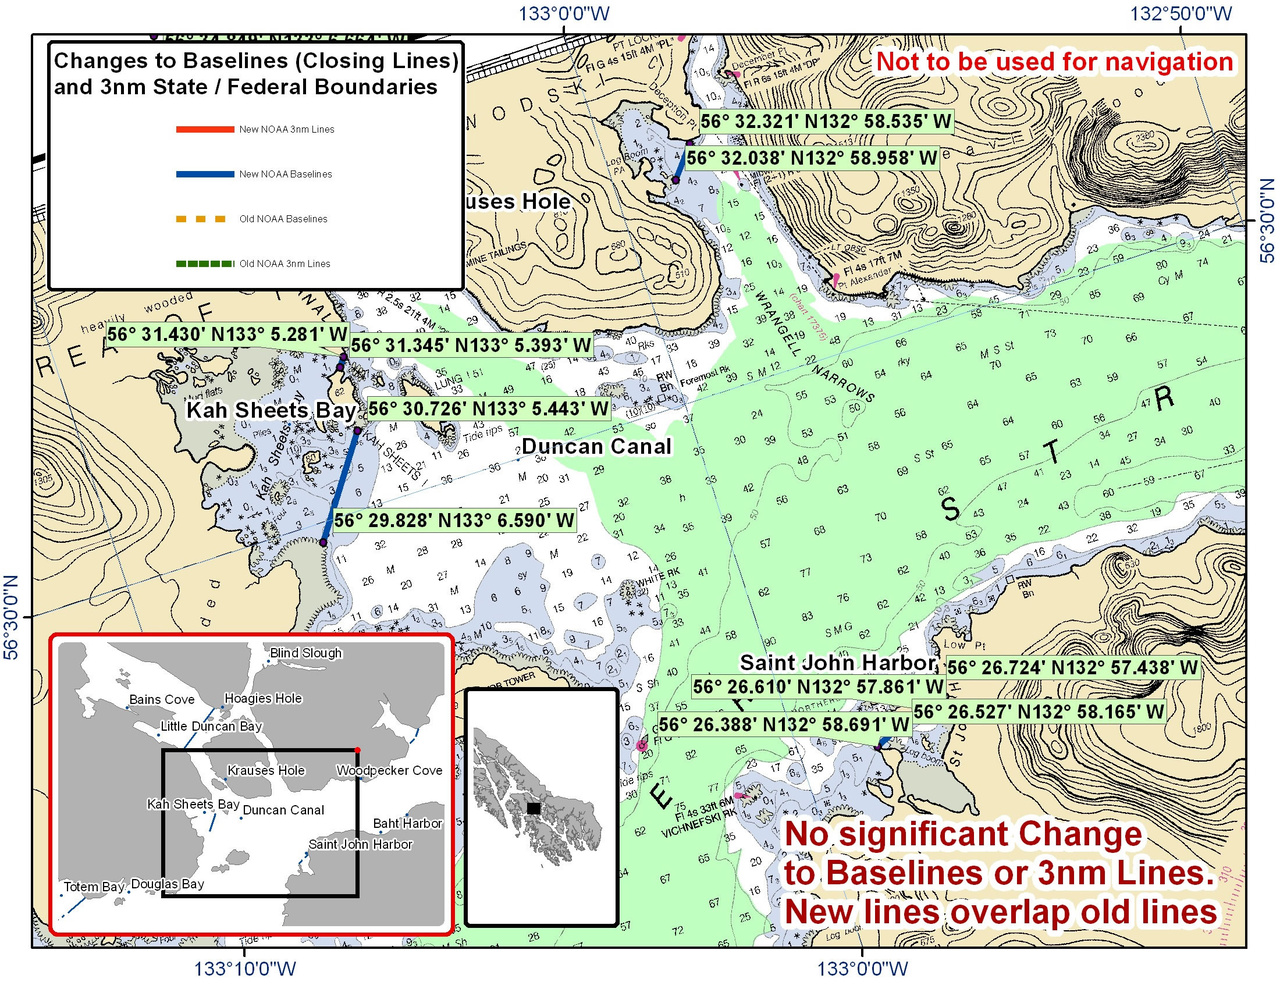 Chart for Duncan Canal and Saint John Harbor and the Surrounding Area